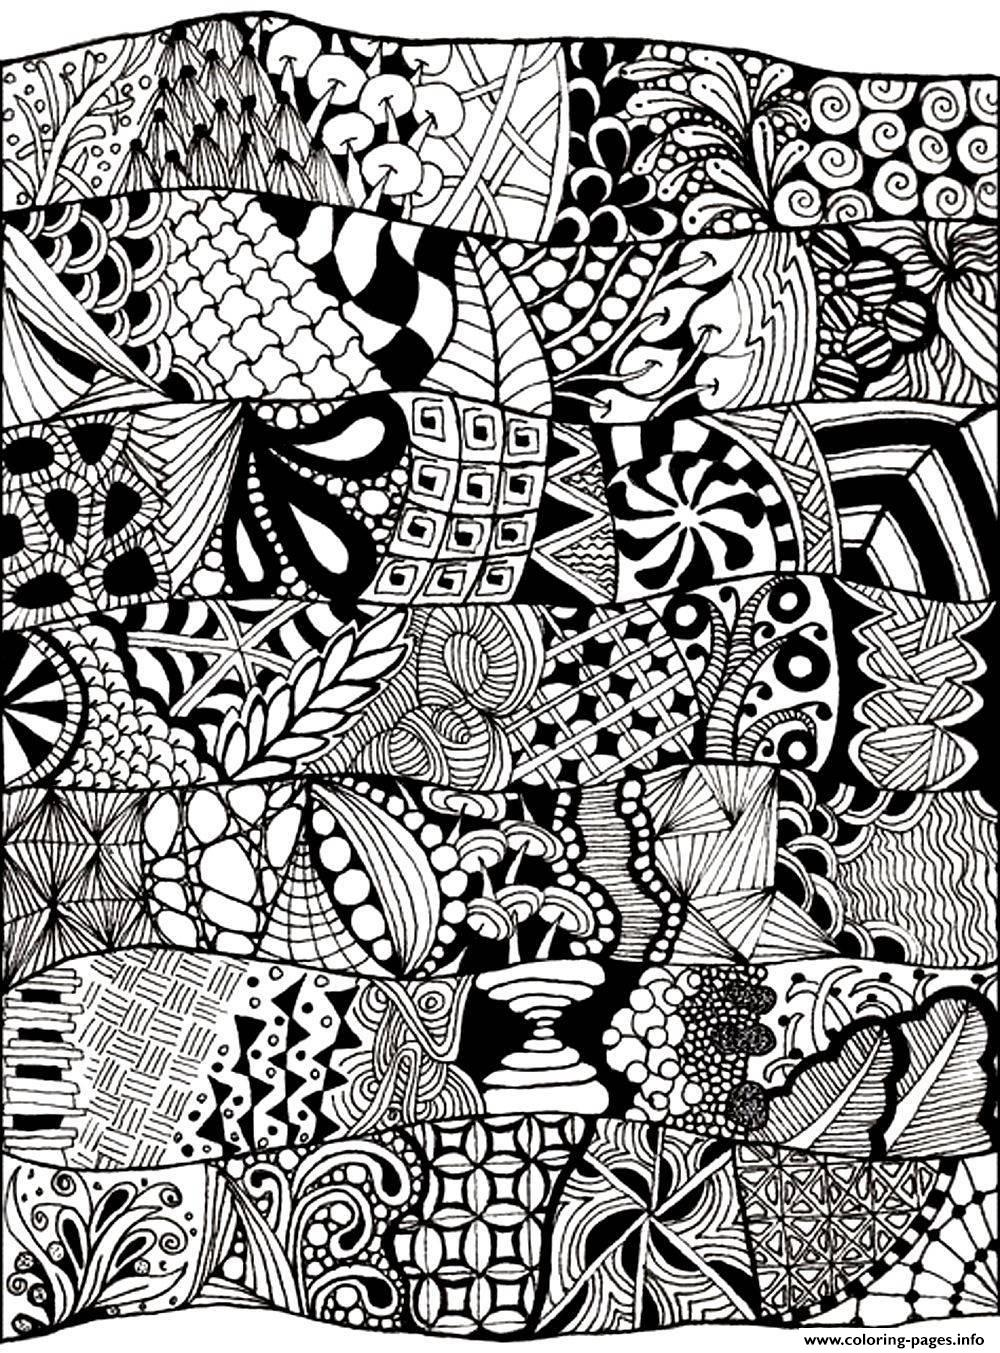 Adult zen anti stress abstract to print coloring pages Zen coloring book for adults download